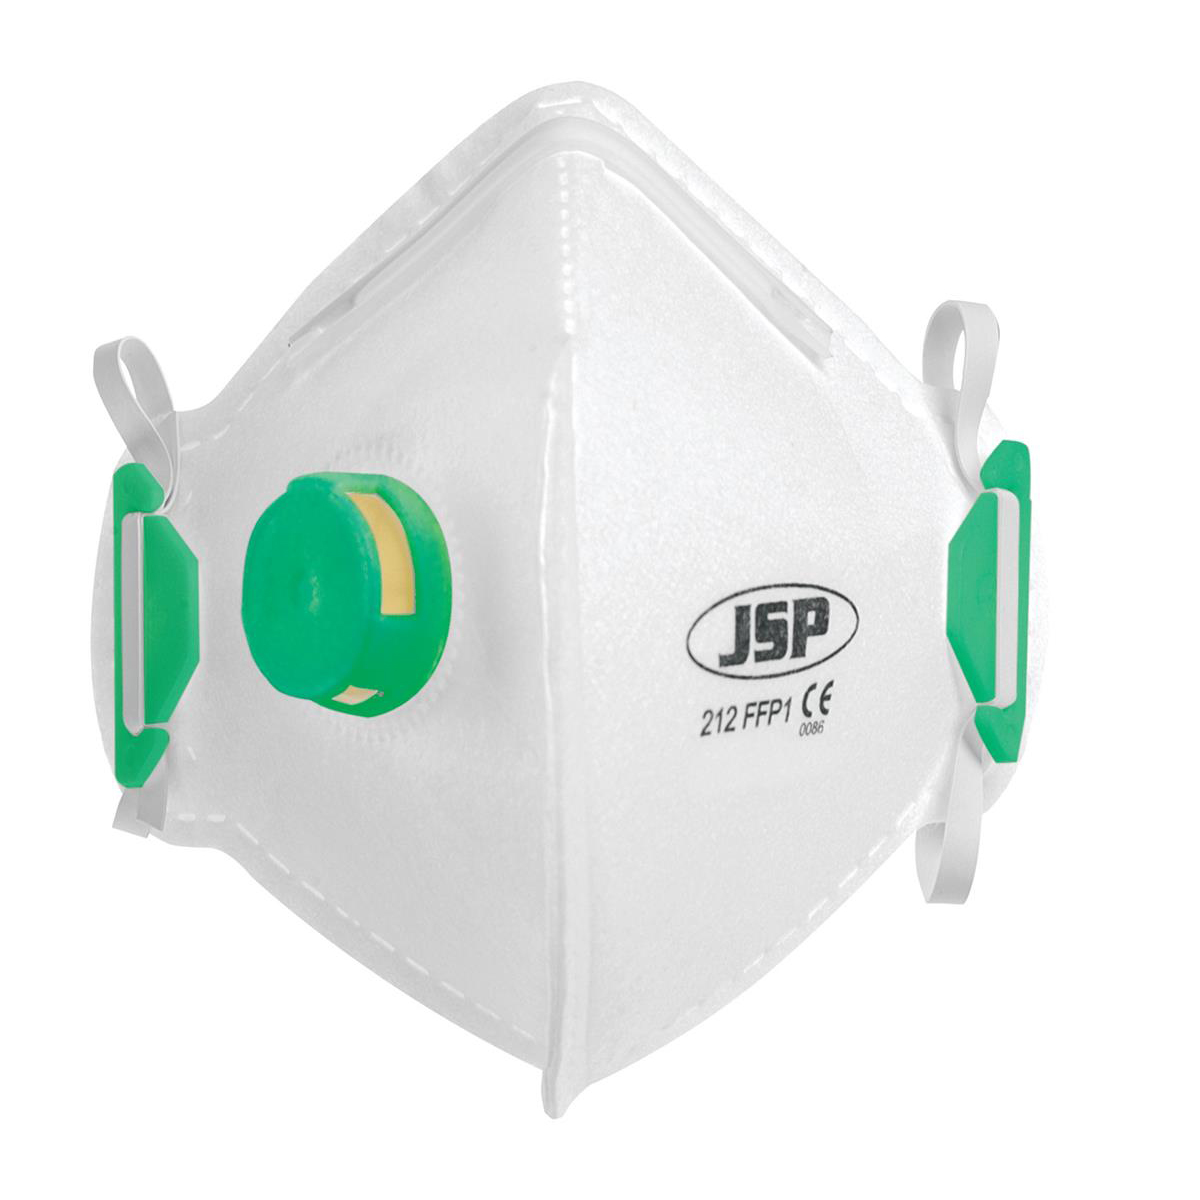 JSP Disposable Mask Valved Fold-flat FFP1 Class 1 EN149:2001 & A1:2009 Ref BEB110-101-000 pack 10